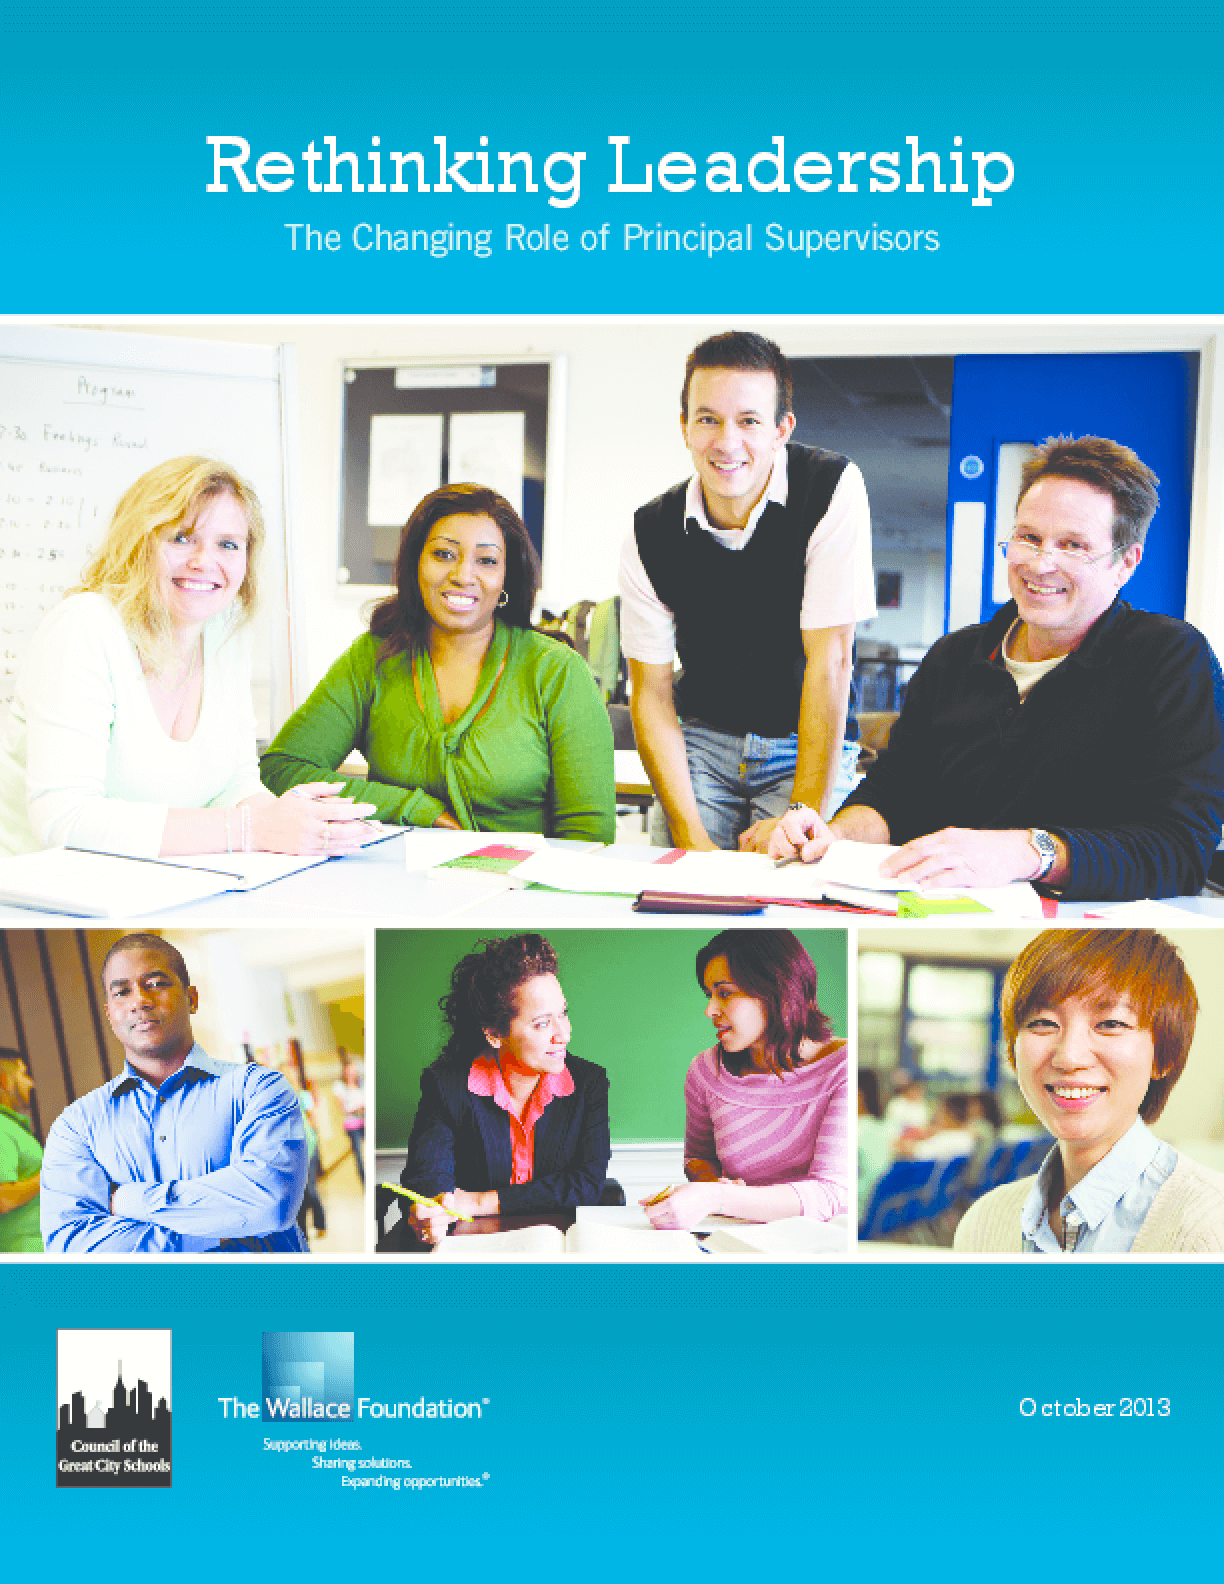 Rethinking Leadership: The Changing Role of Principal Supervisors